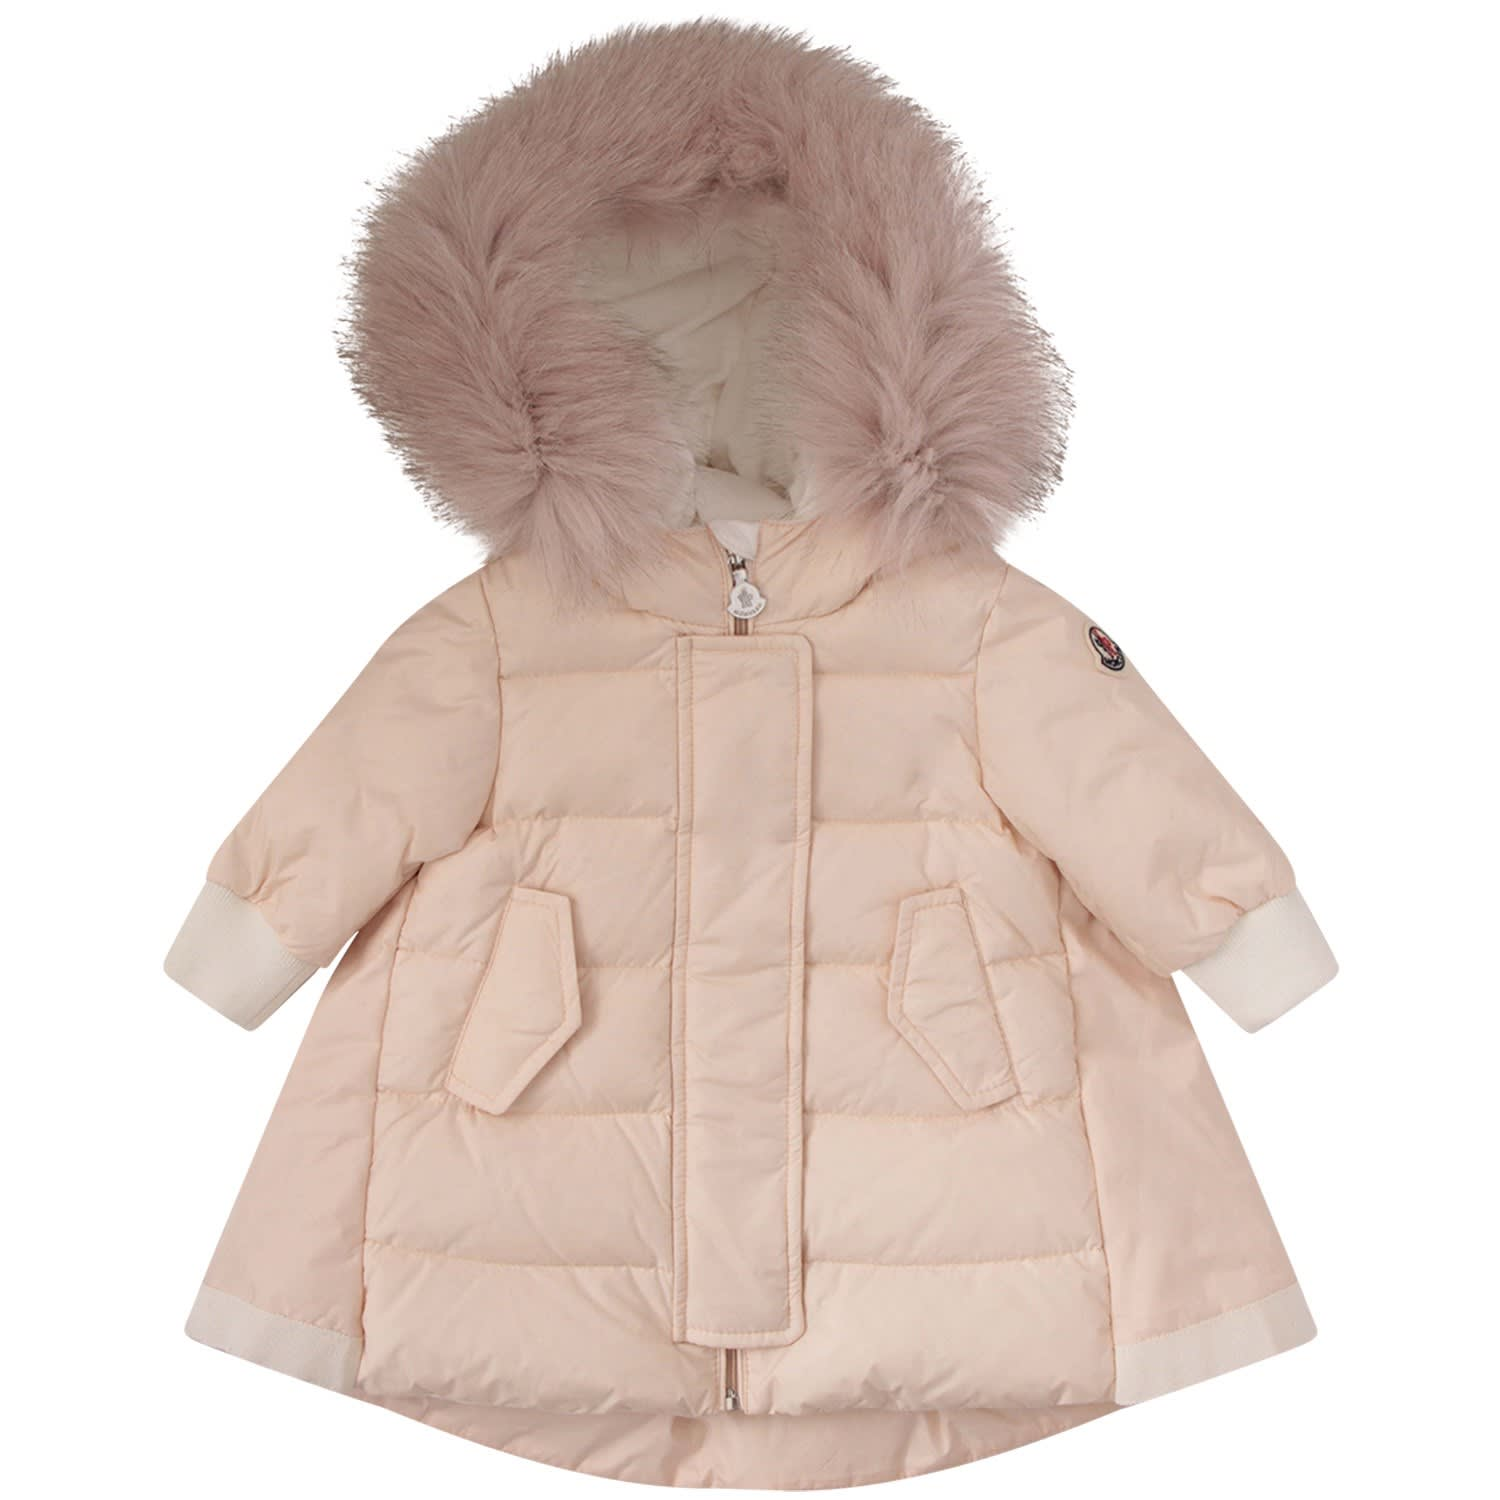 Moncler Babies' Pink Jacket With Iconic Logo